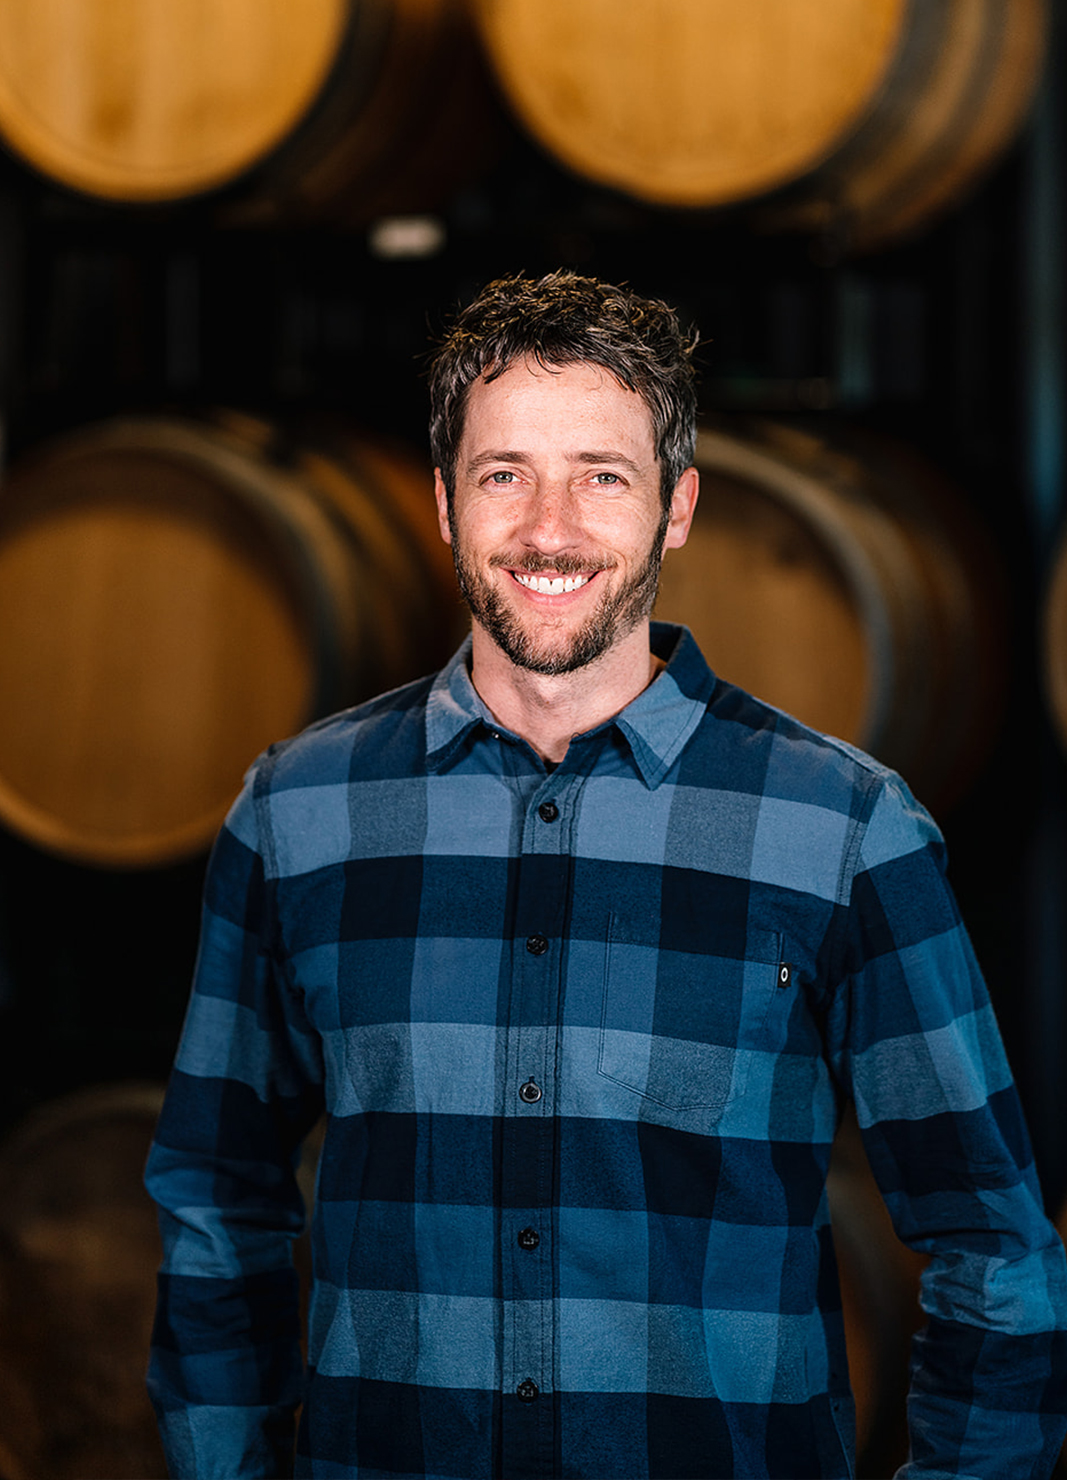 Carboy Sales & Market Strategy Director, Kevin Webber, standing in front of wine barrels